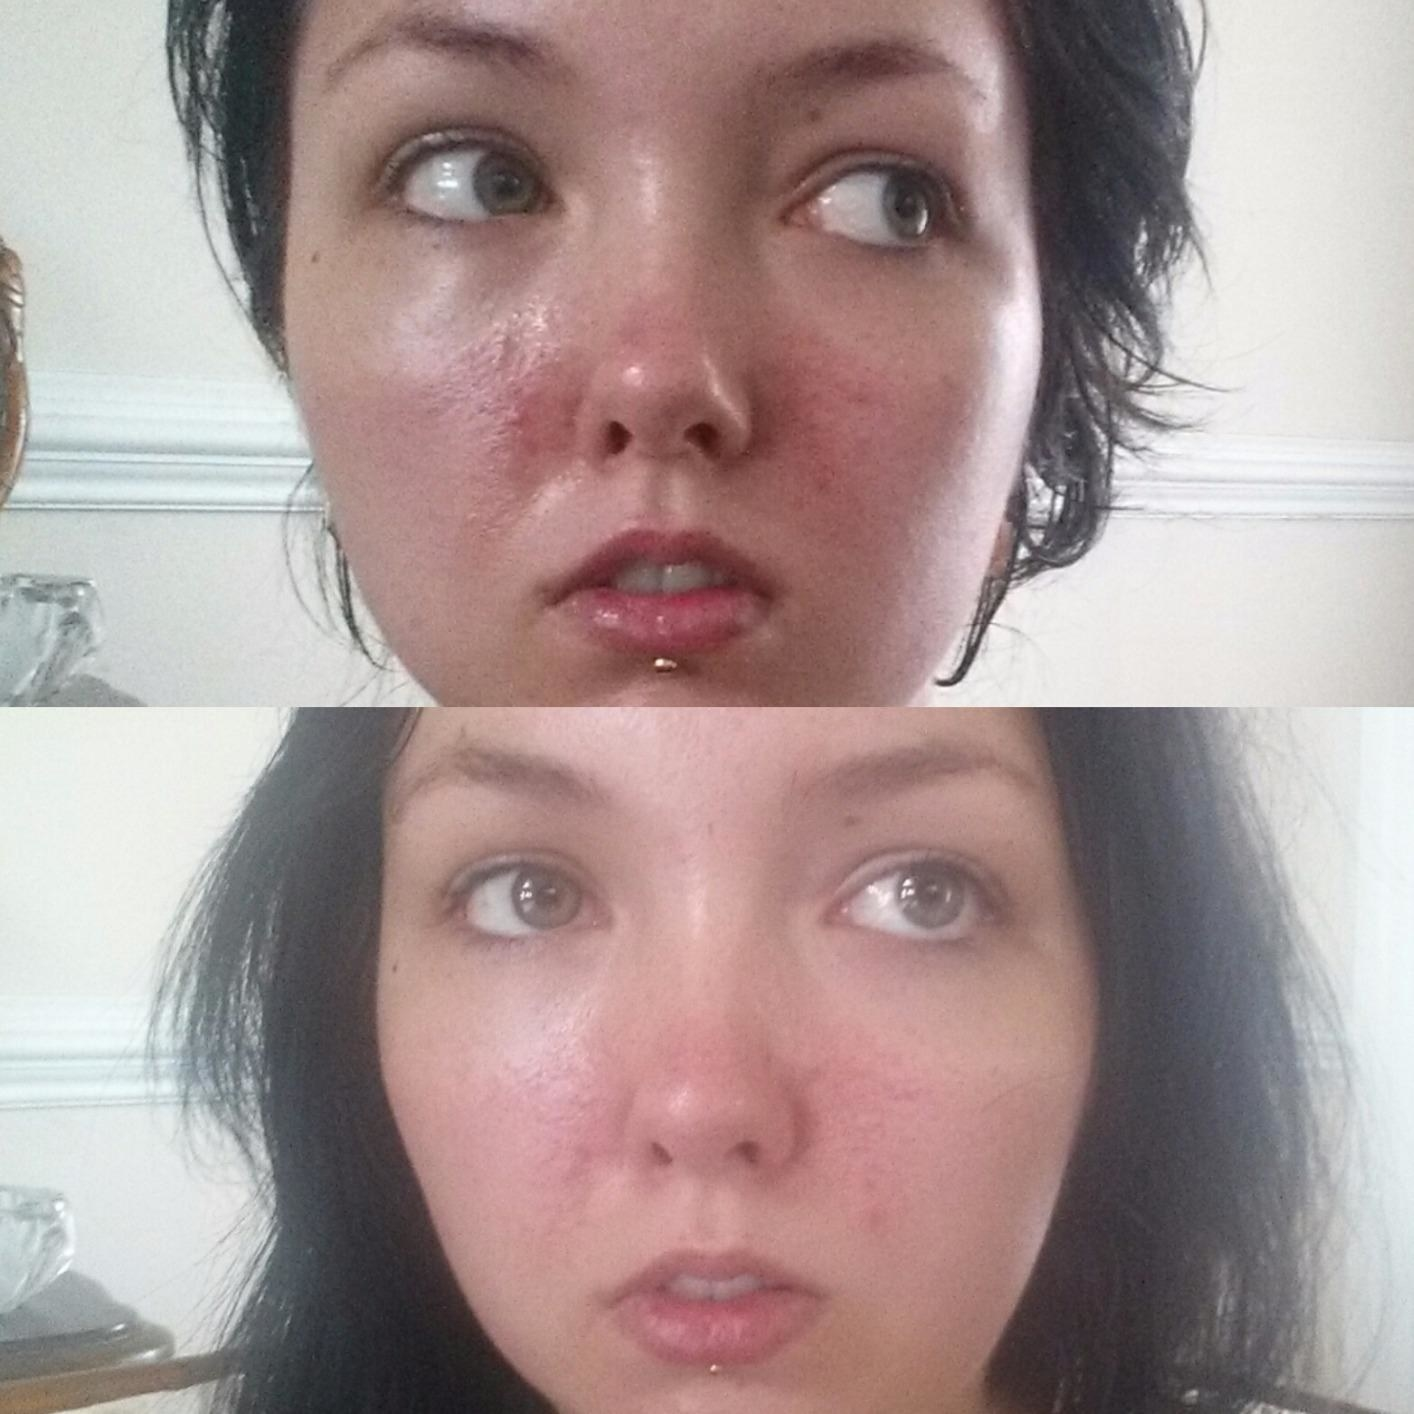 reviewer with bumpy red skin before and smoother less red skin after use of product